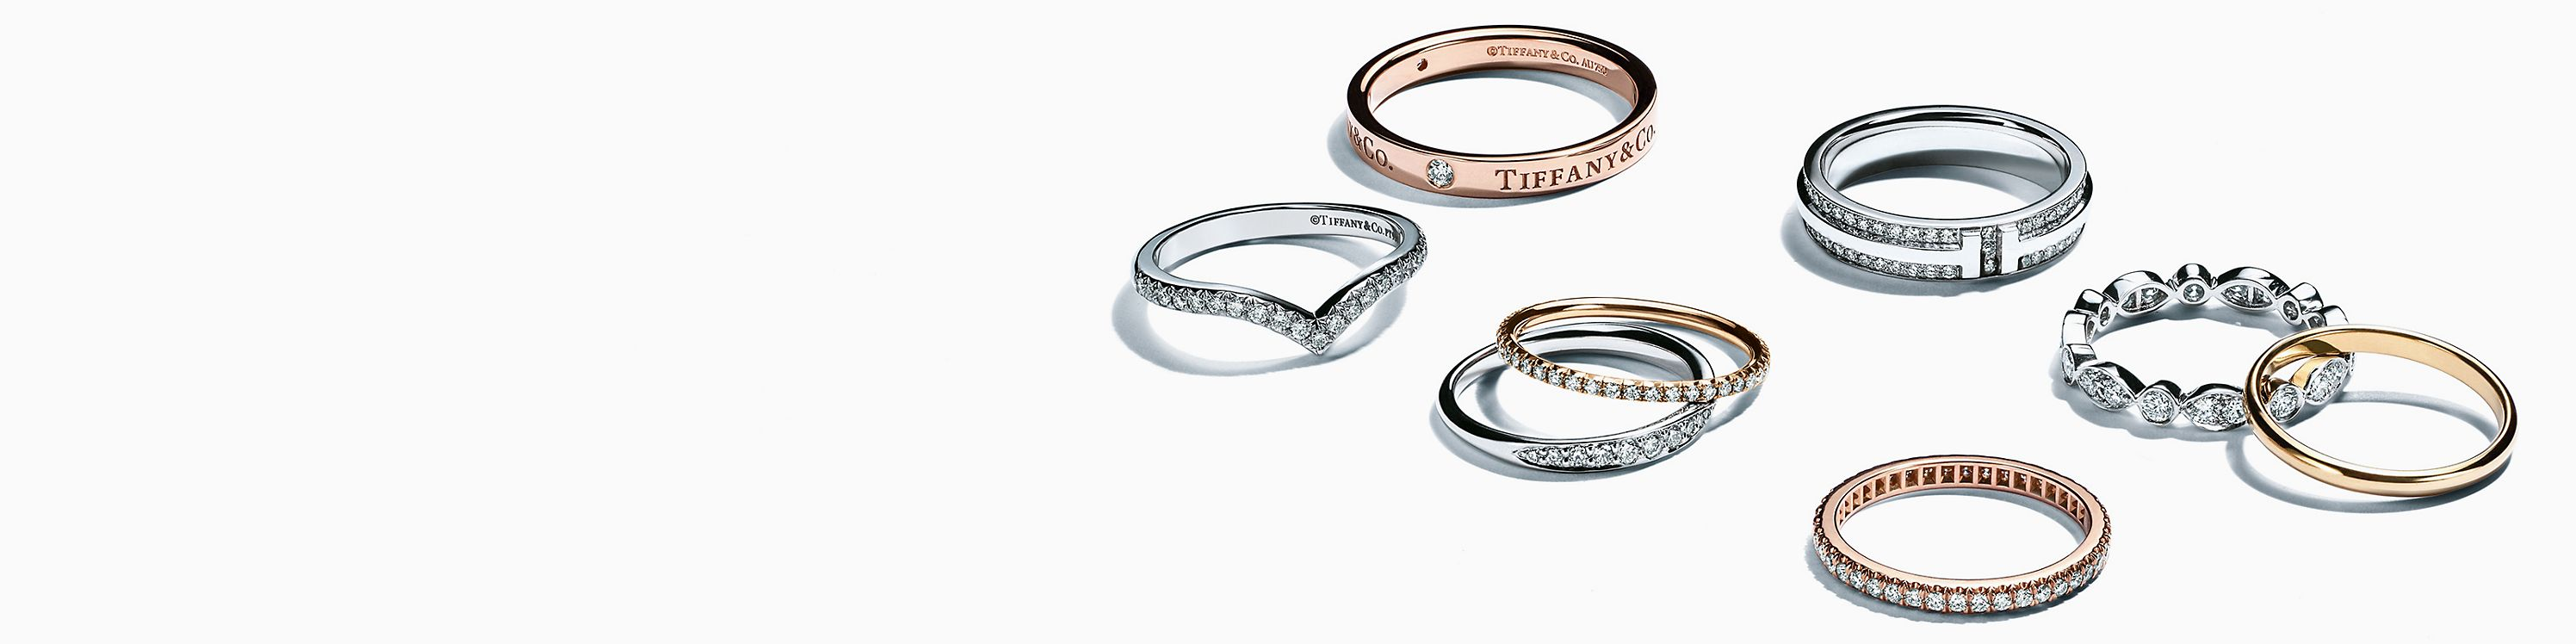 Wedding Bands For Women.Women S Wedding Bands Tiffany Co